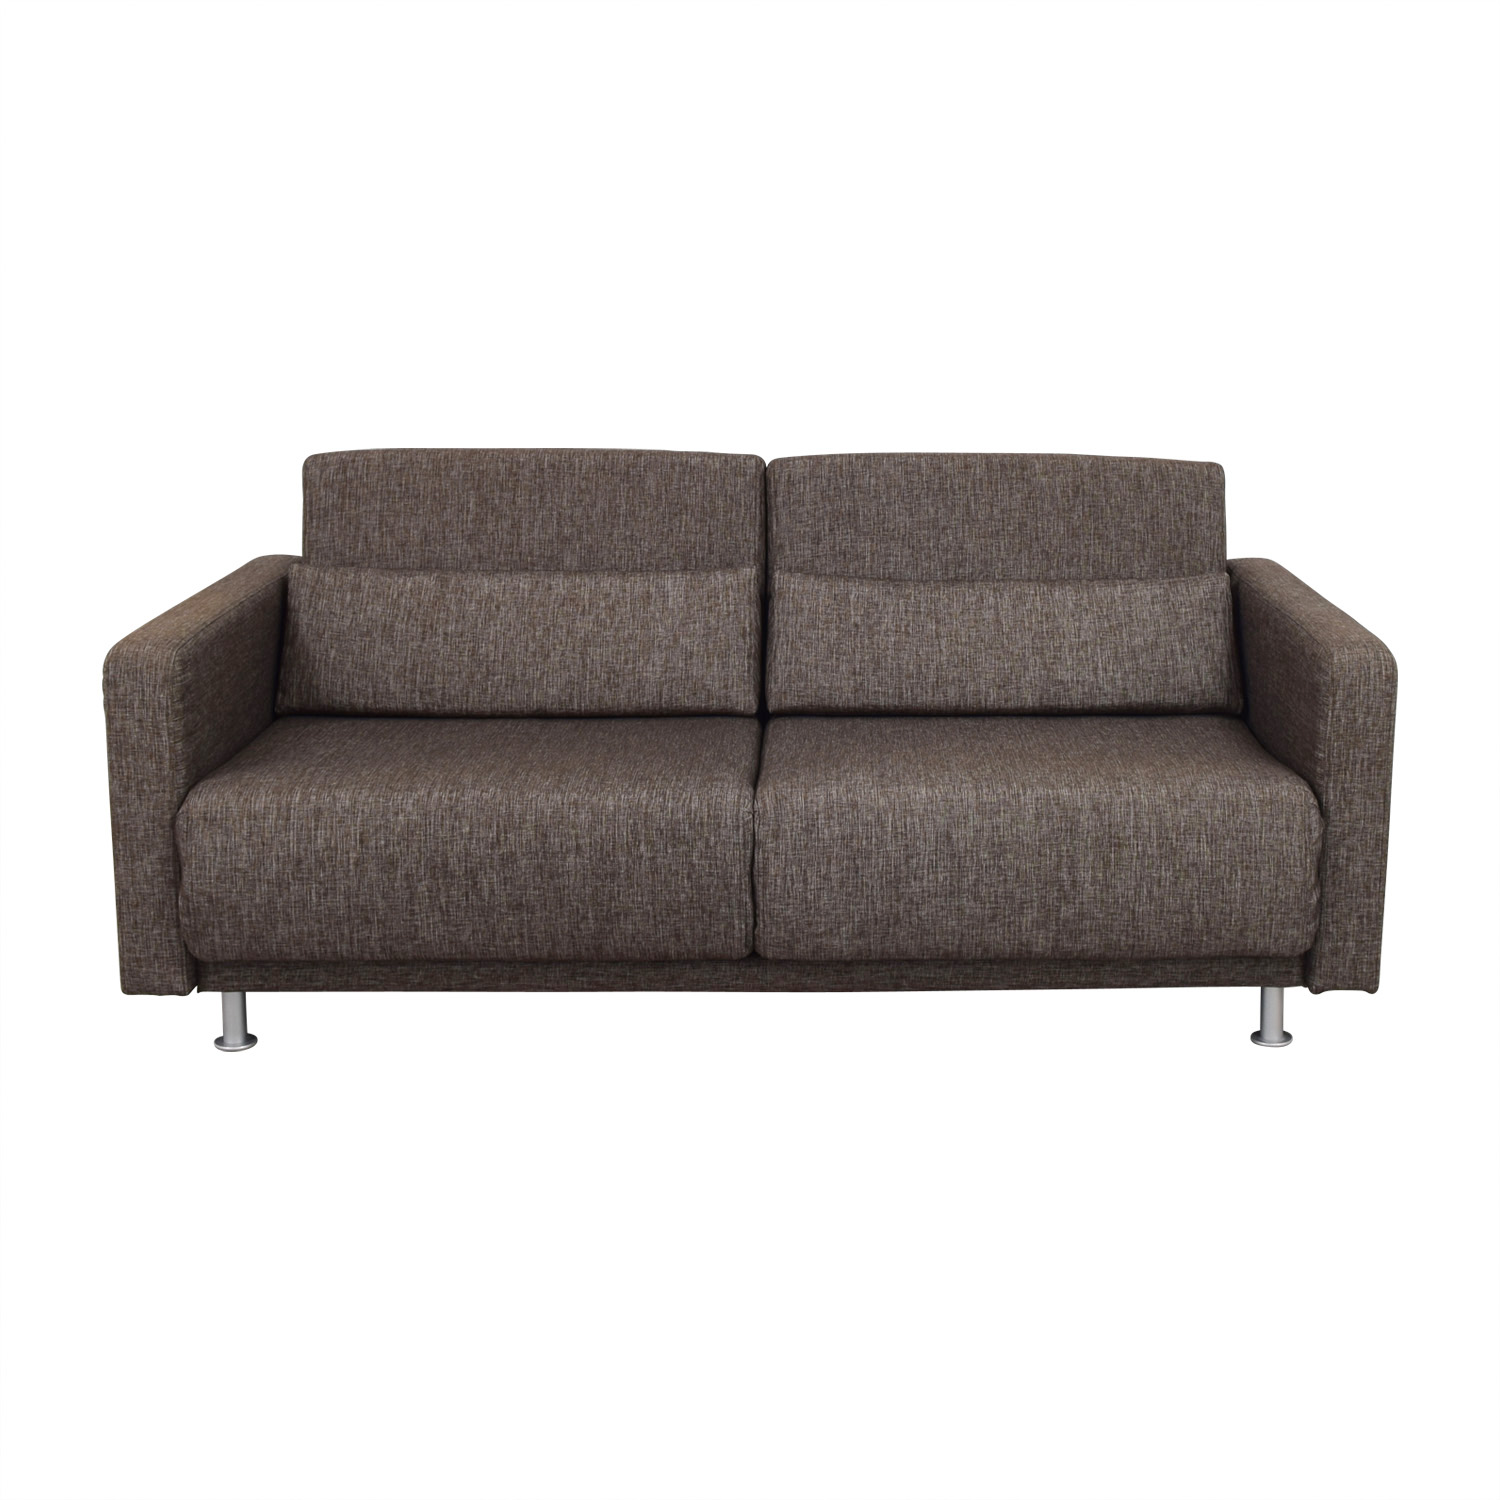 Sofa Outlet Paisley Best Classic Sofas For 500 1000